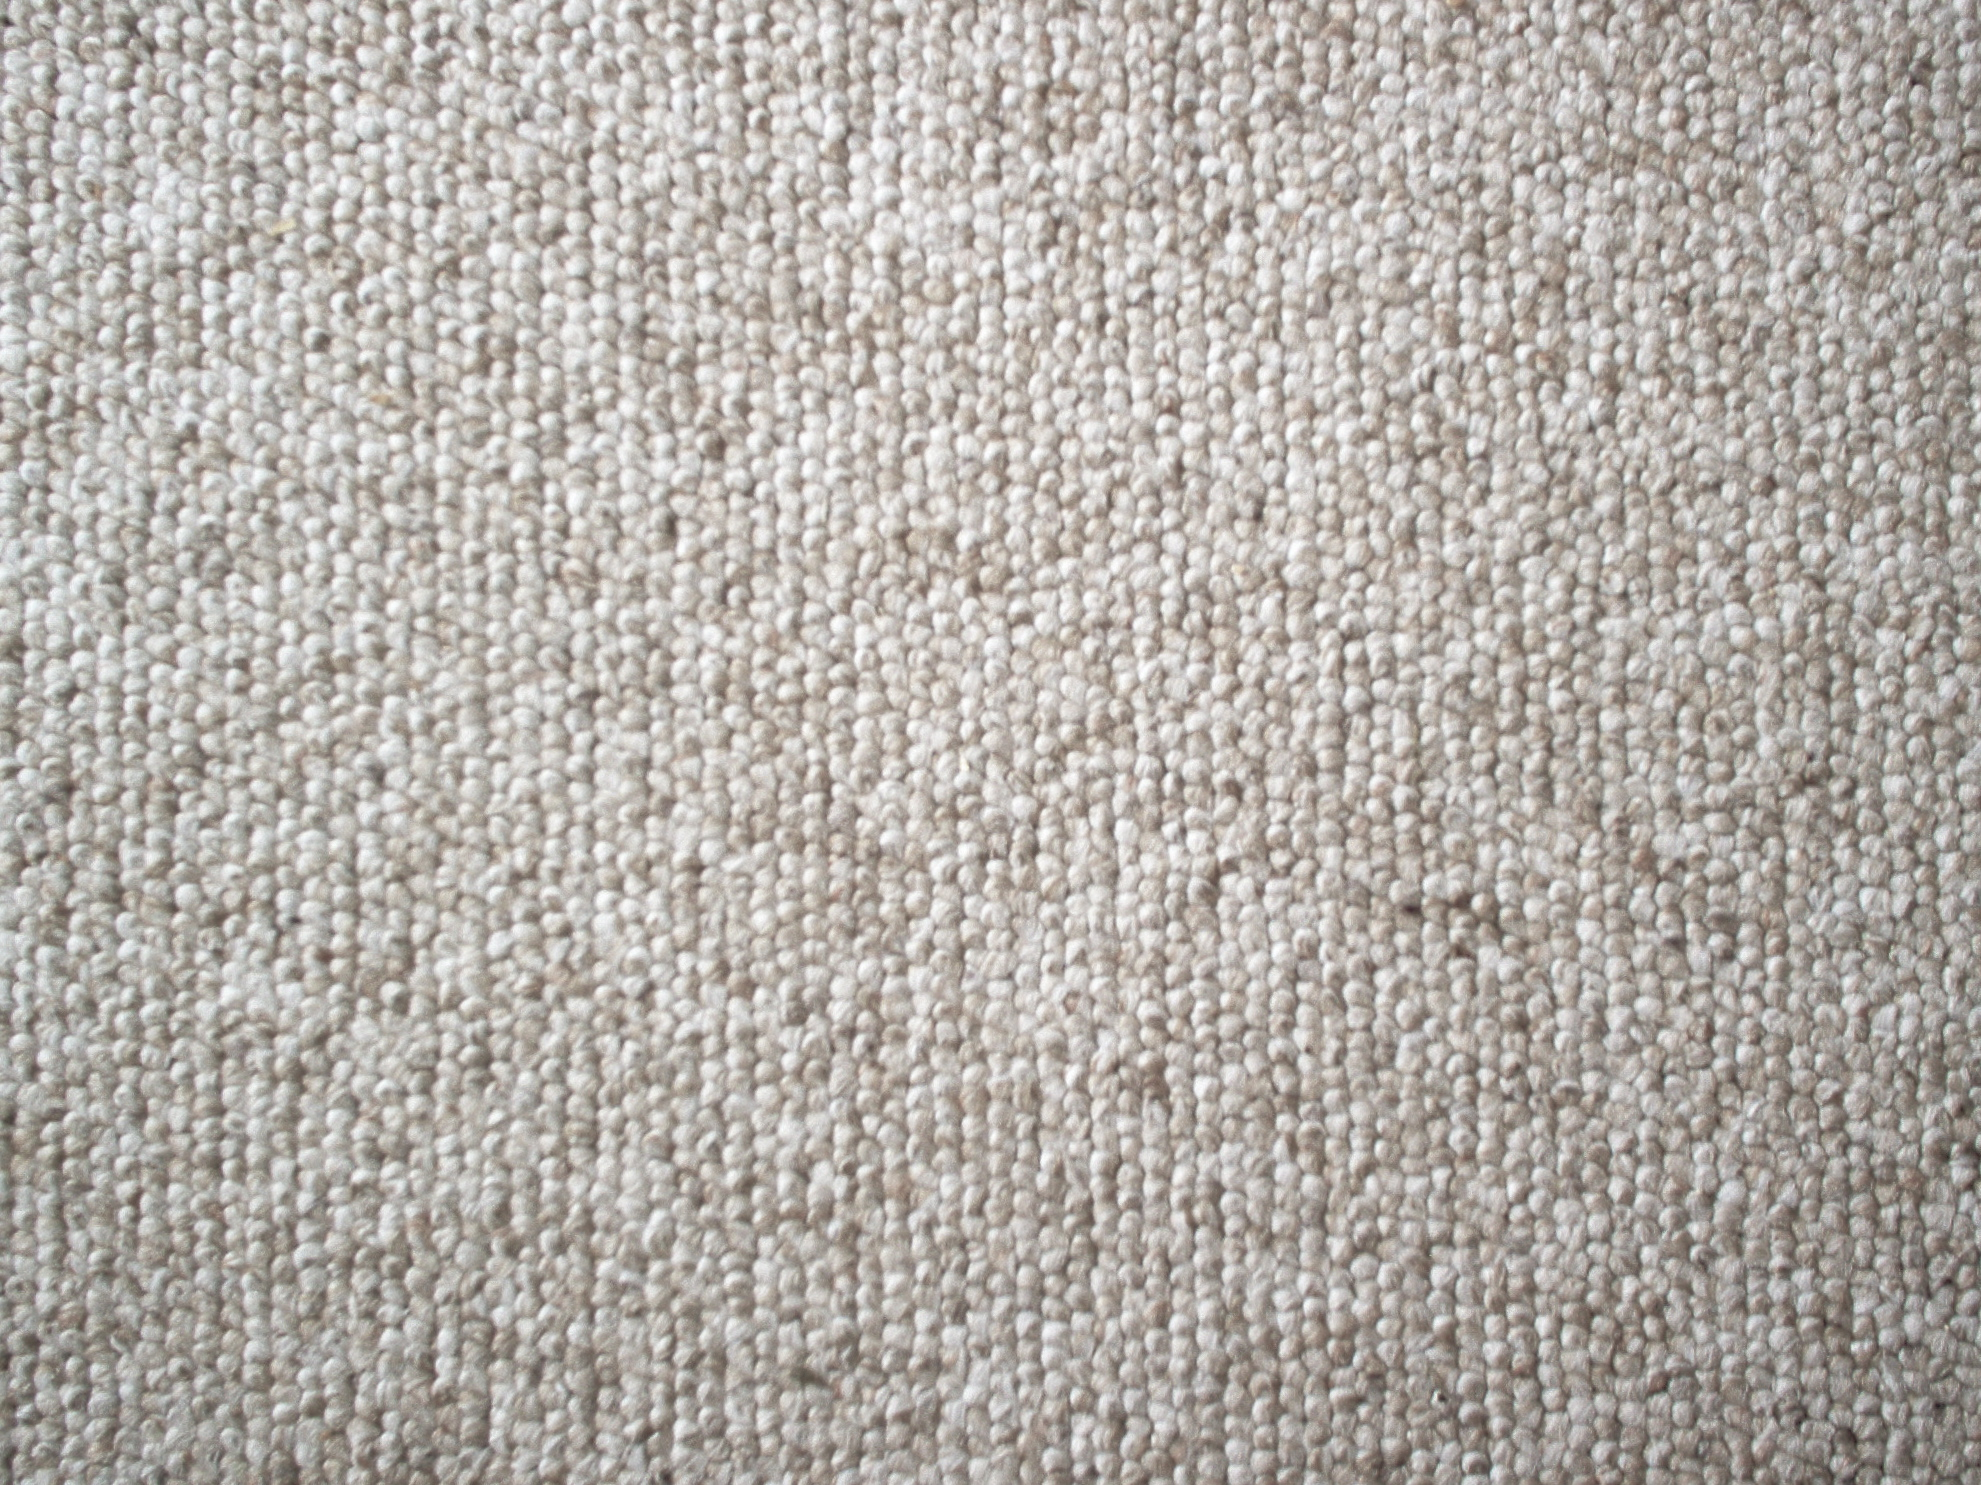 V.12 Carpet, High Resolution Pic